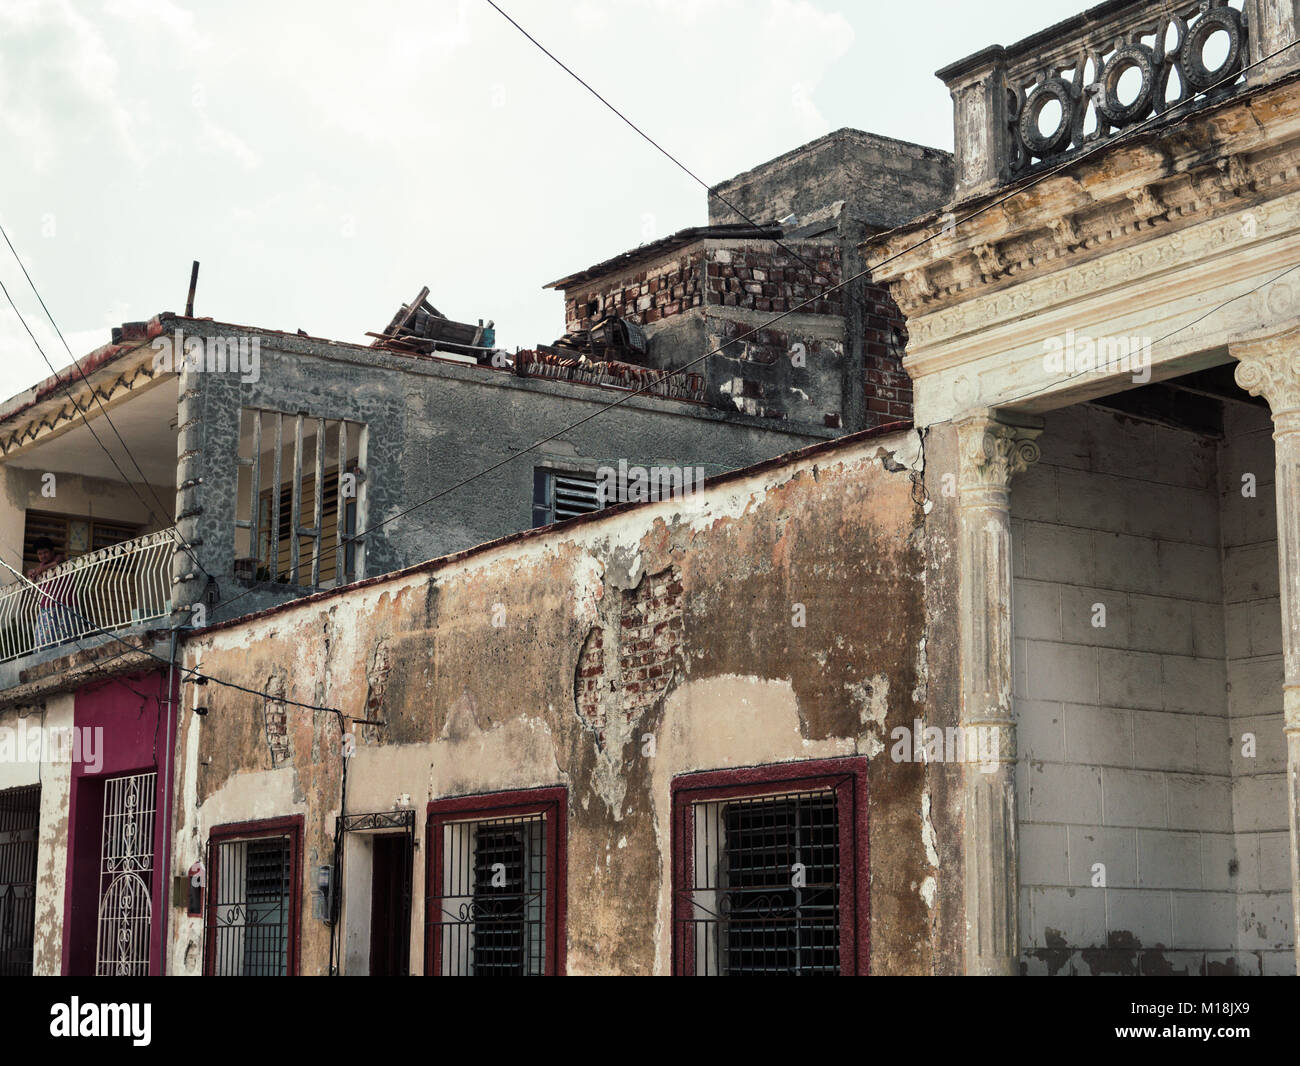 Holguin, Cuba - August 31, 2017: Different types of Homes in the city. - Stock Image